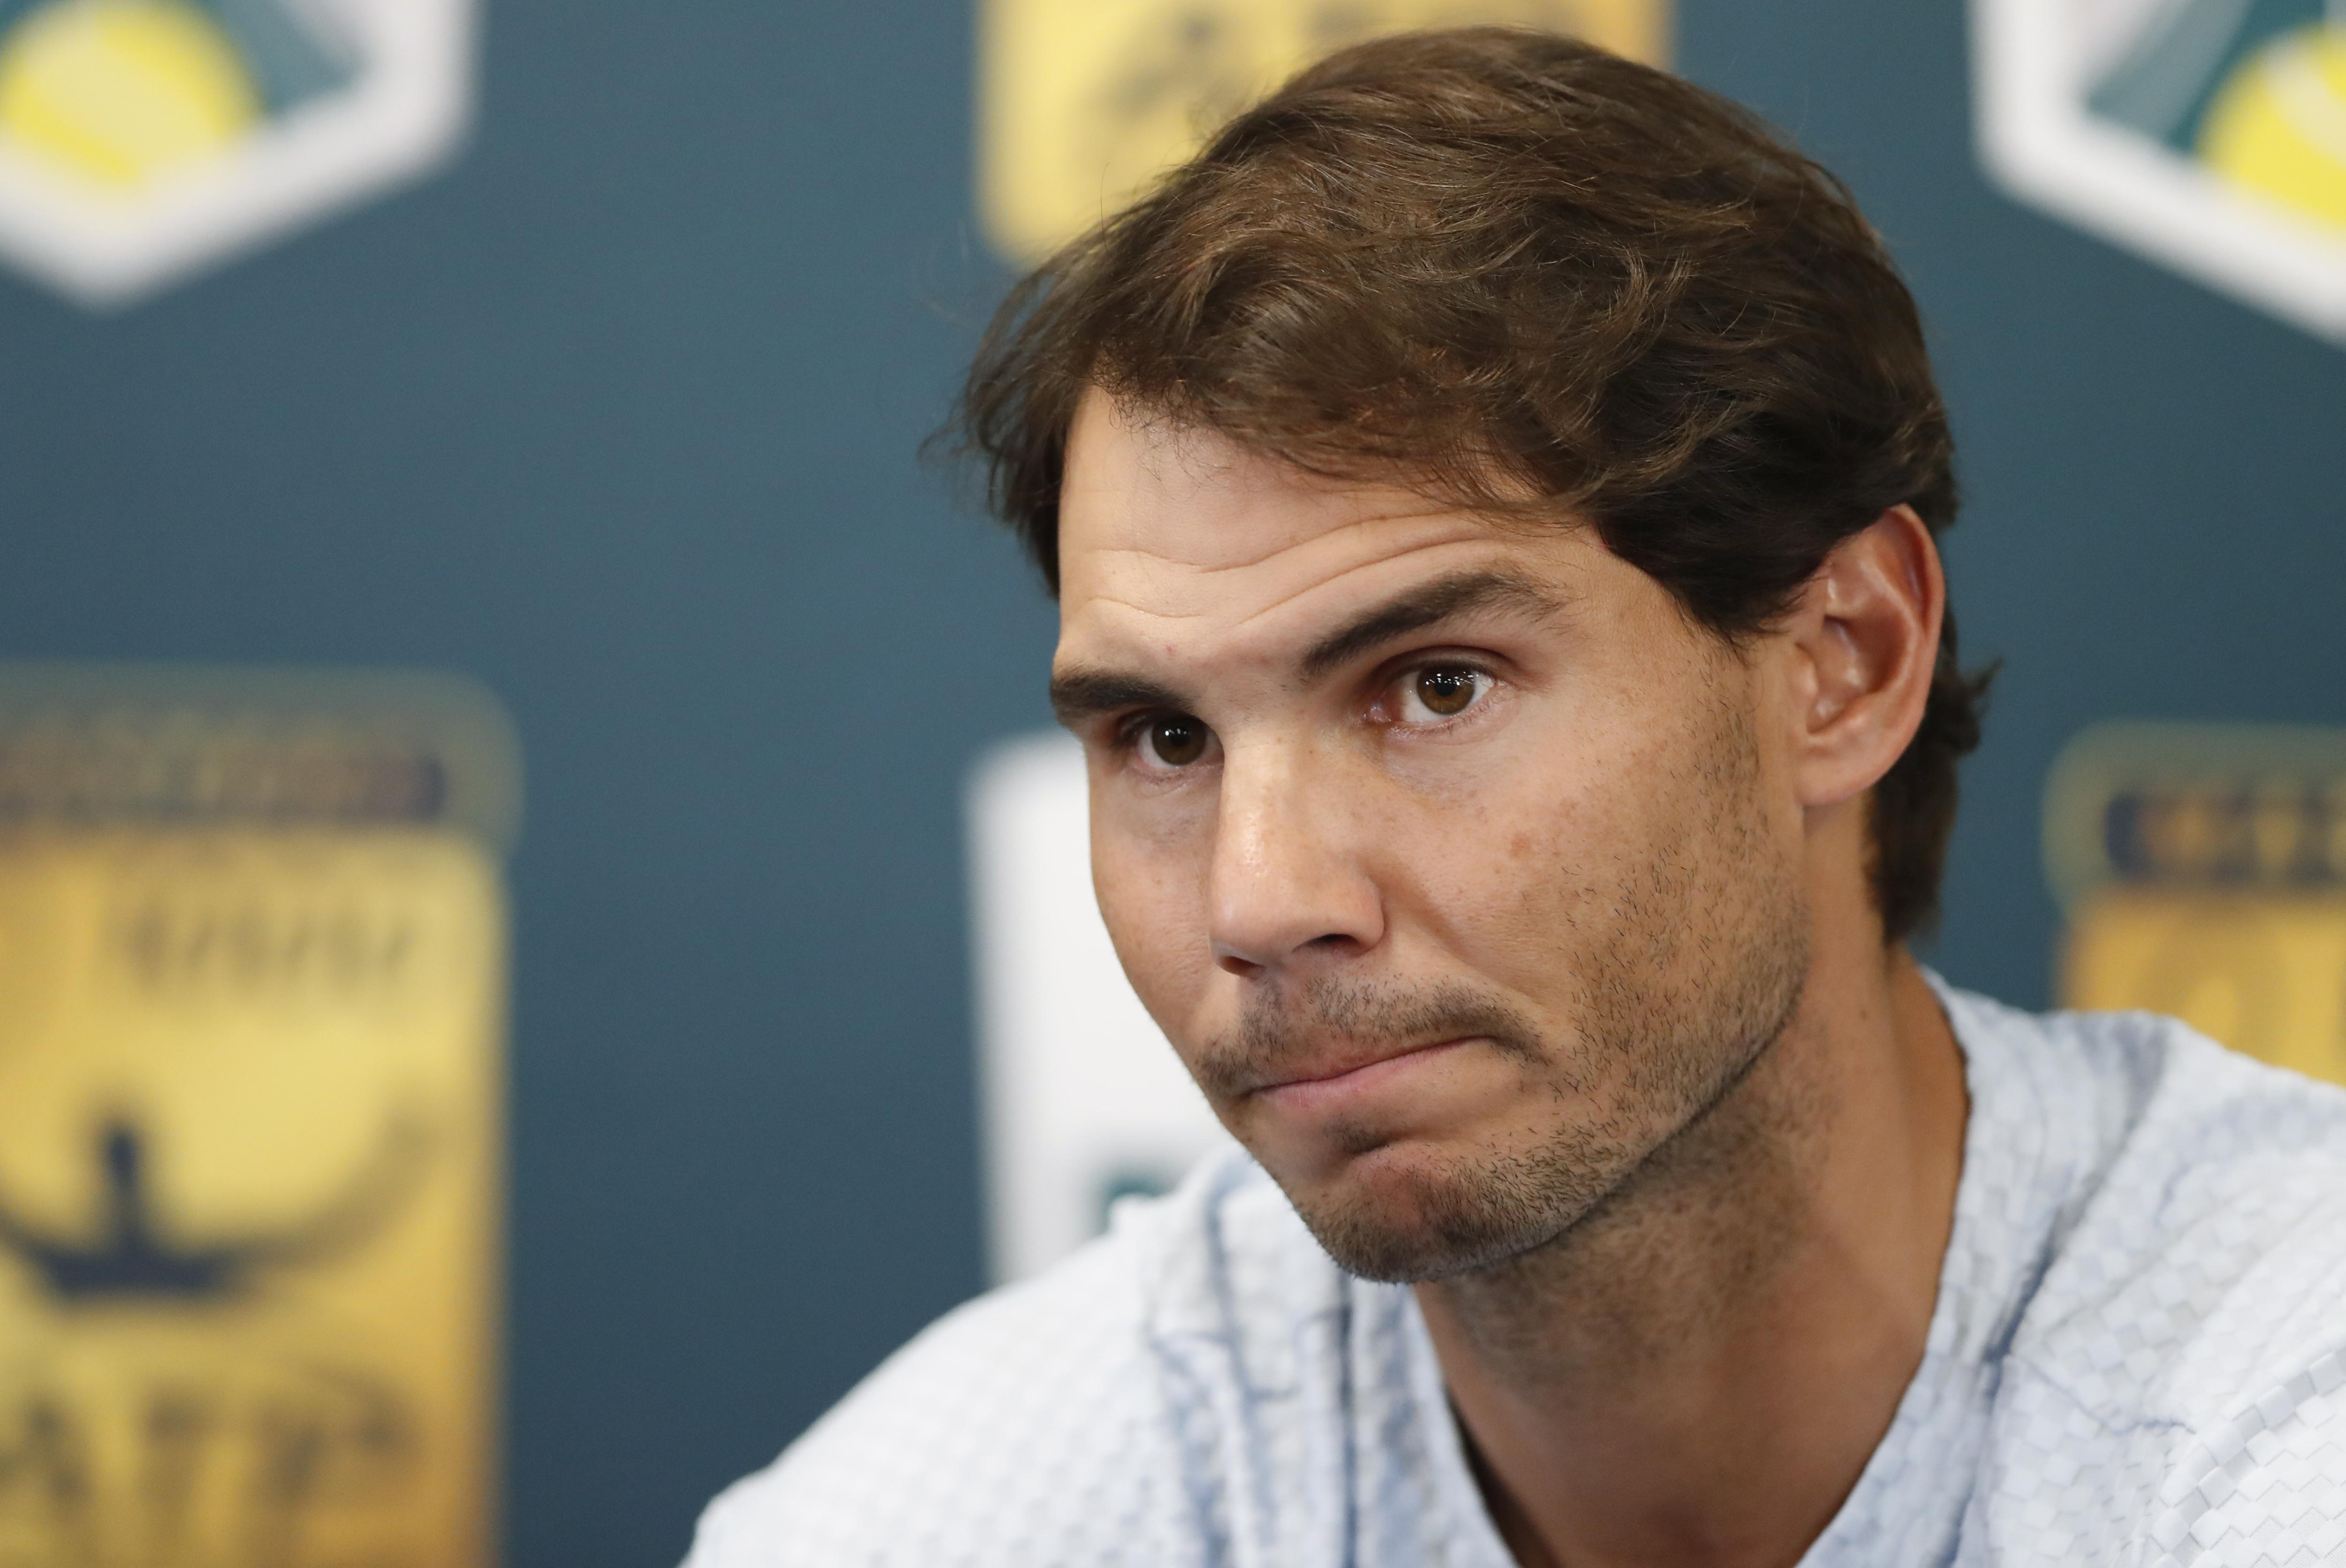 Rafa Nadal has pulled out of the Paris Masters through injury